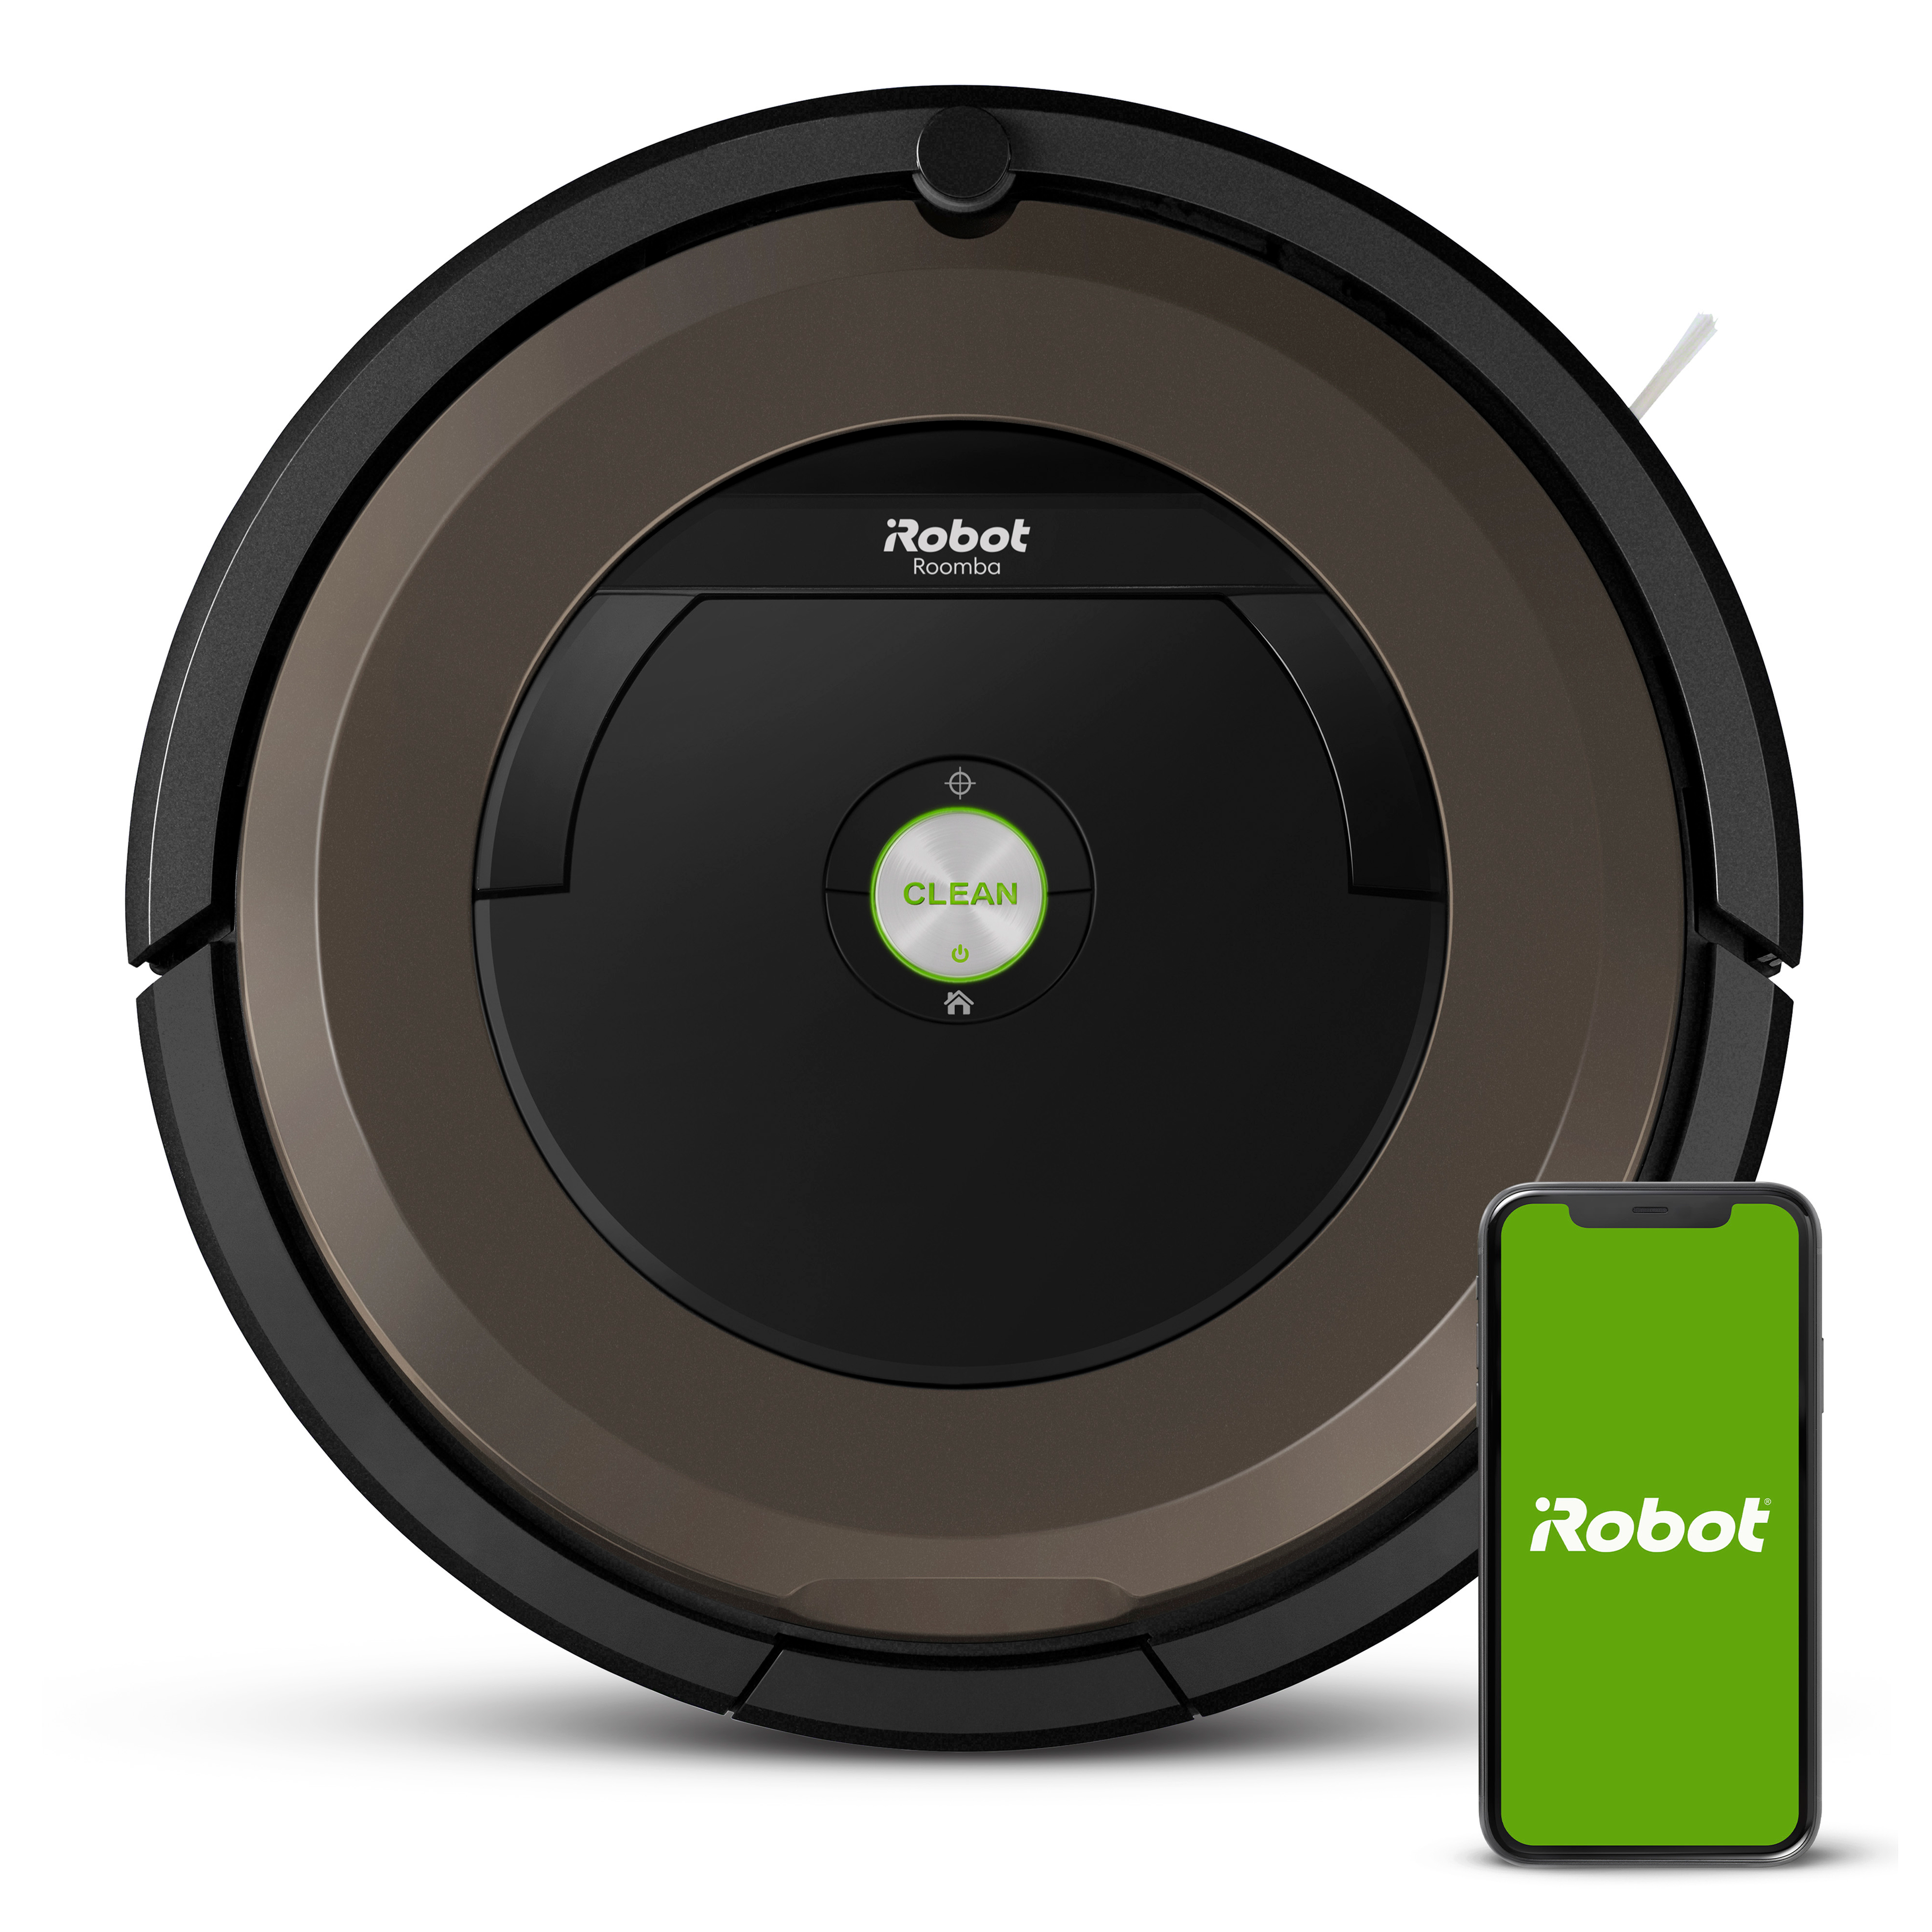 iRobot Roomba 890 Robot Vacuum- Wi-Fi Connected, Works with Google Home, Ideal for Pet Hair, Carpets, Hard Floors